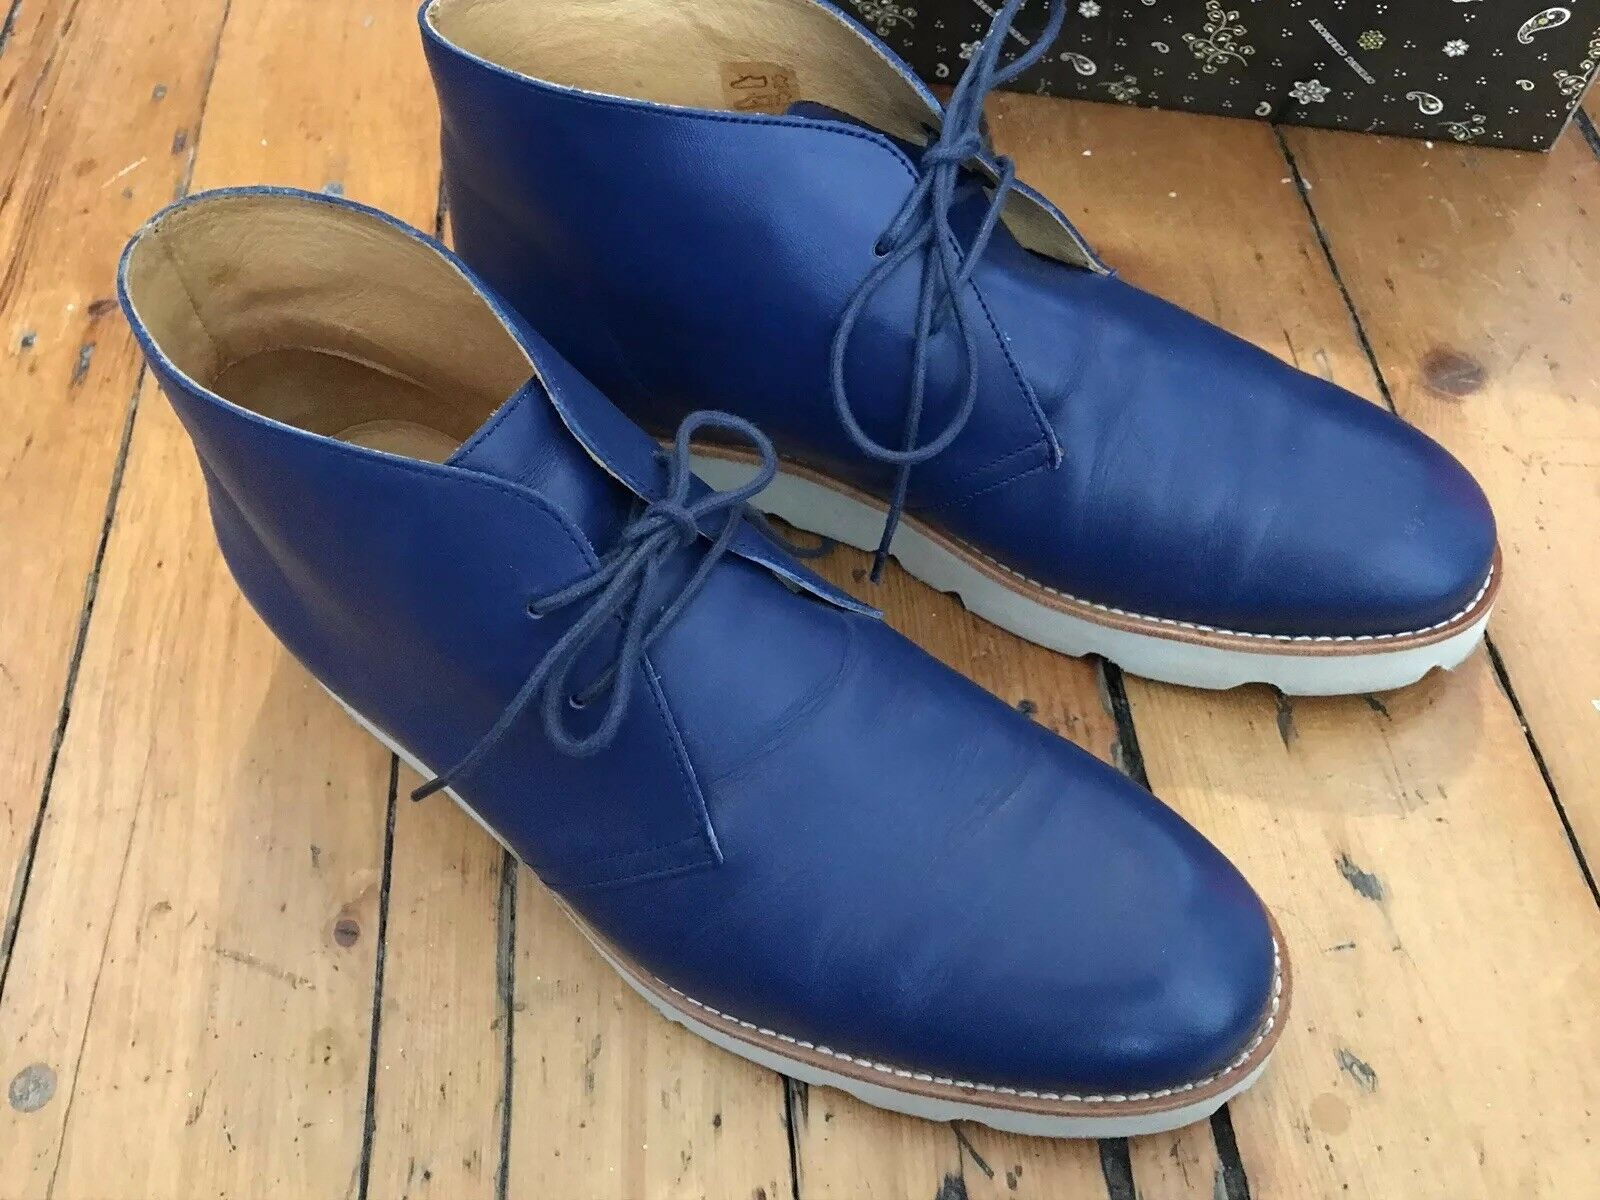 Opening ceremony chukka creepers bluee leather shoes Kenzo dress up size 42 9